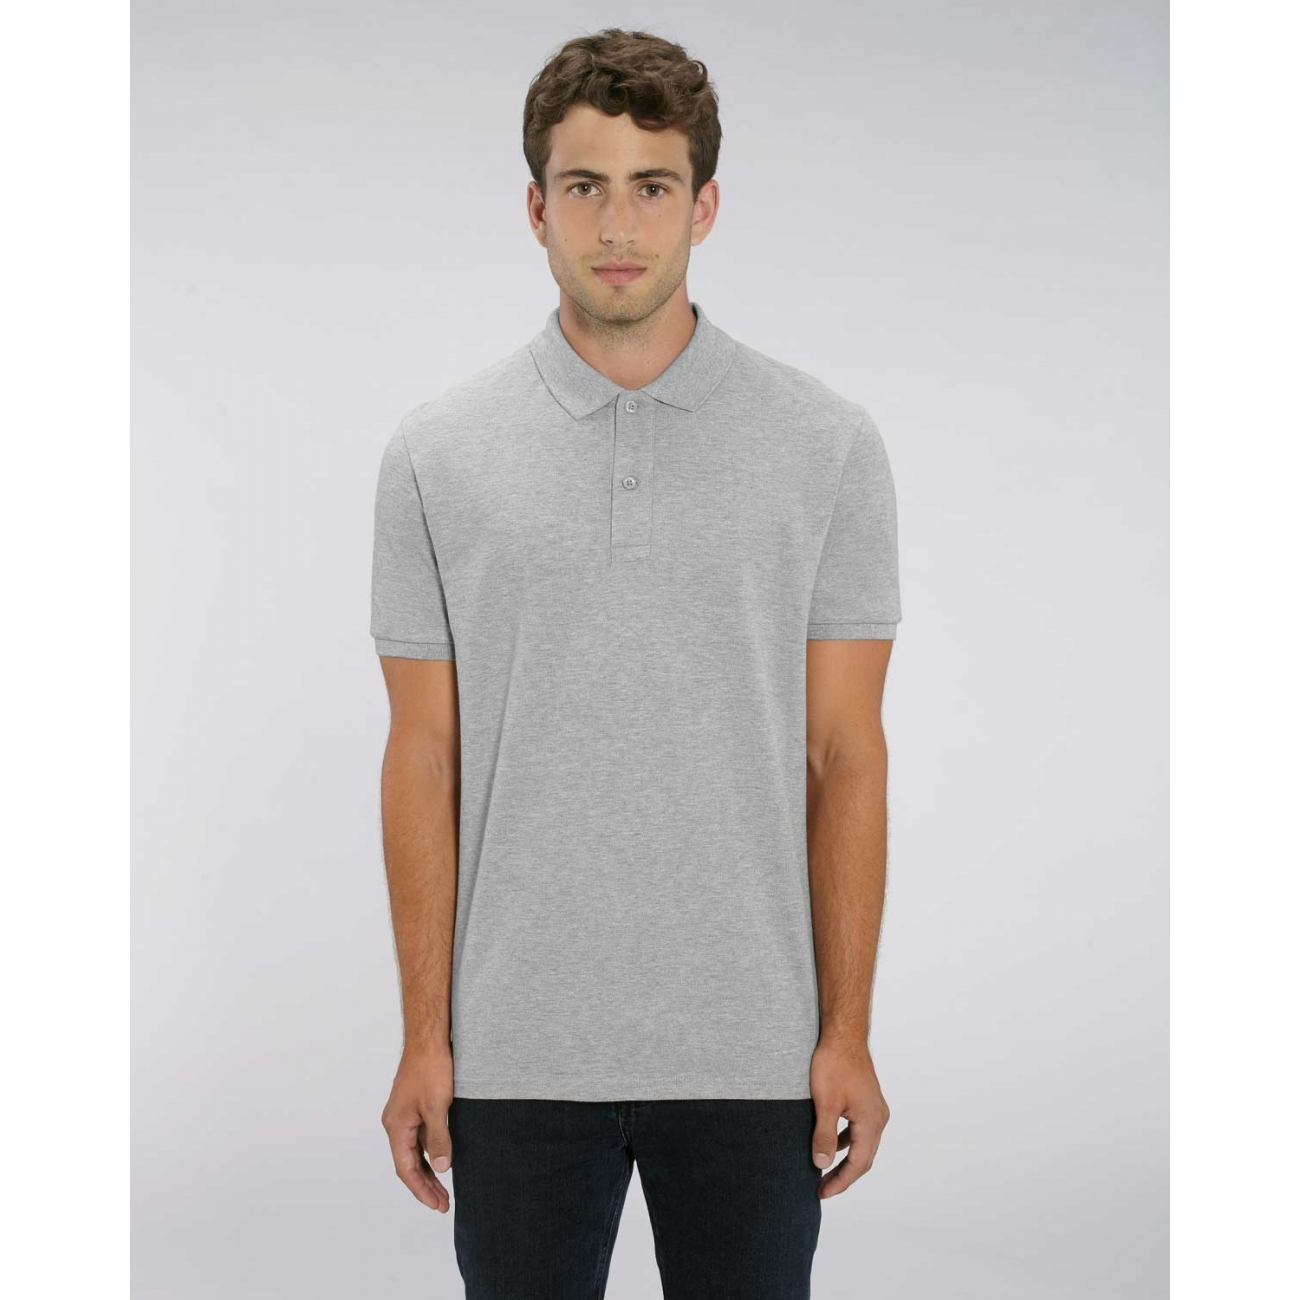 https://tee-shirt-bio.com/7054-thickbox_default/polo-gris-chine-clair-coton-bio-pour-homme-dedicator.jpg